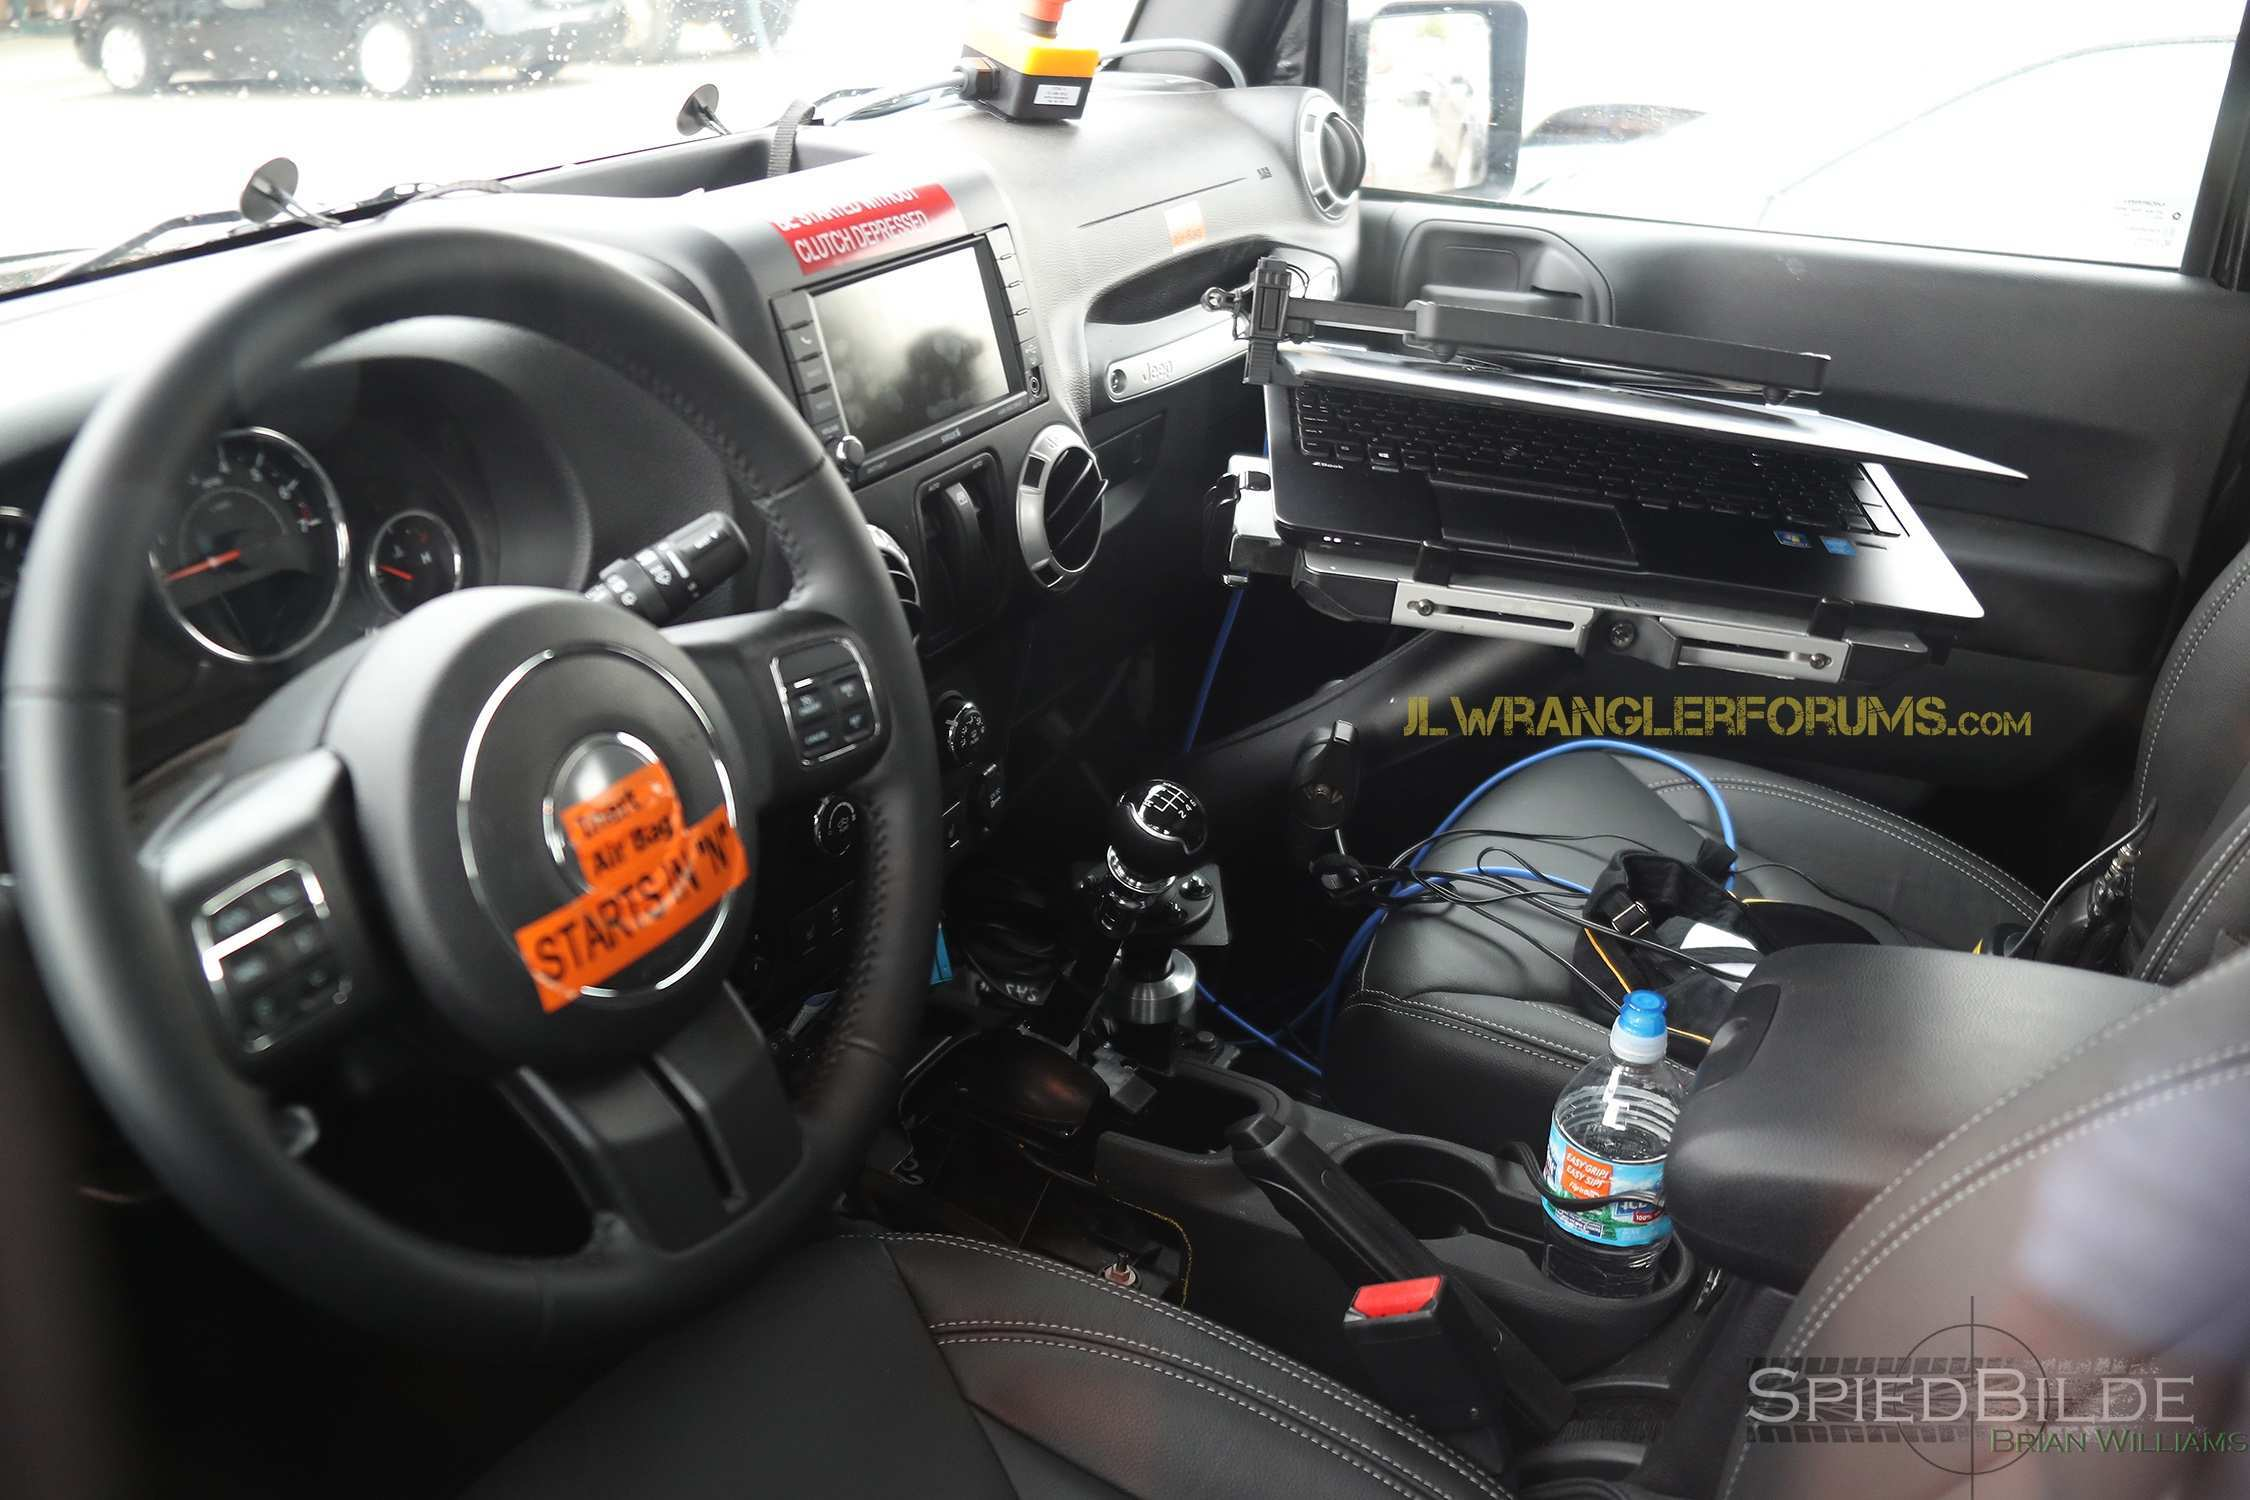 34 New 2019 Jeep Manual Transmission Images